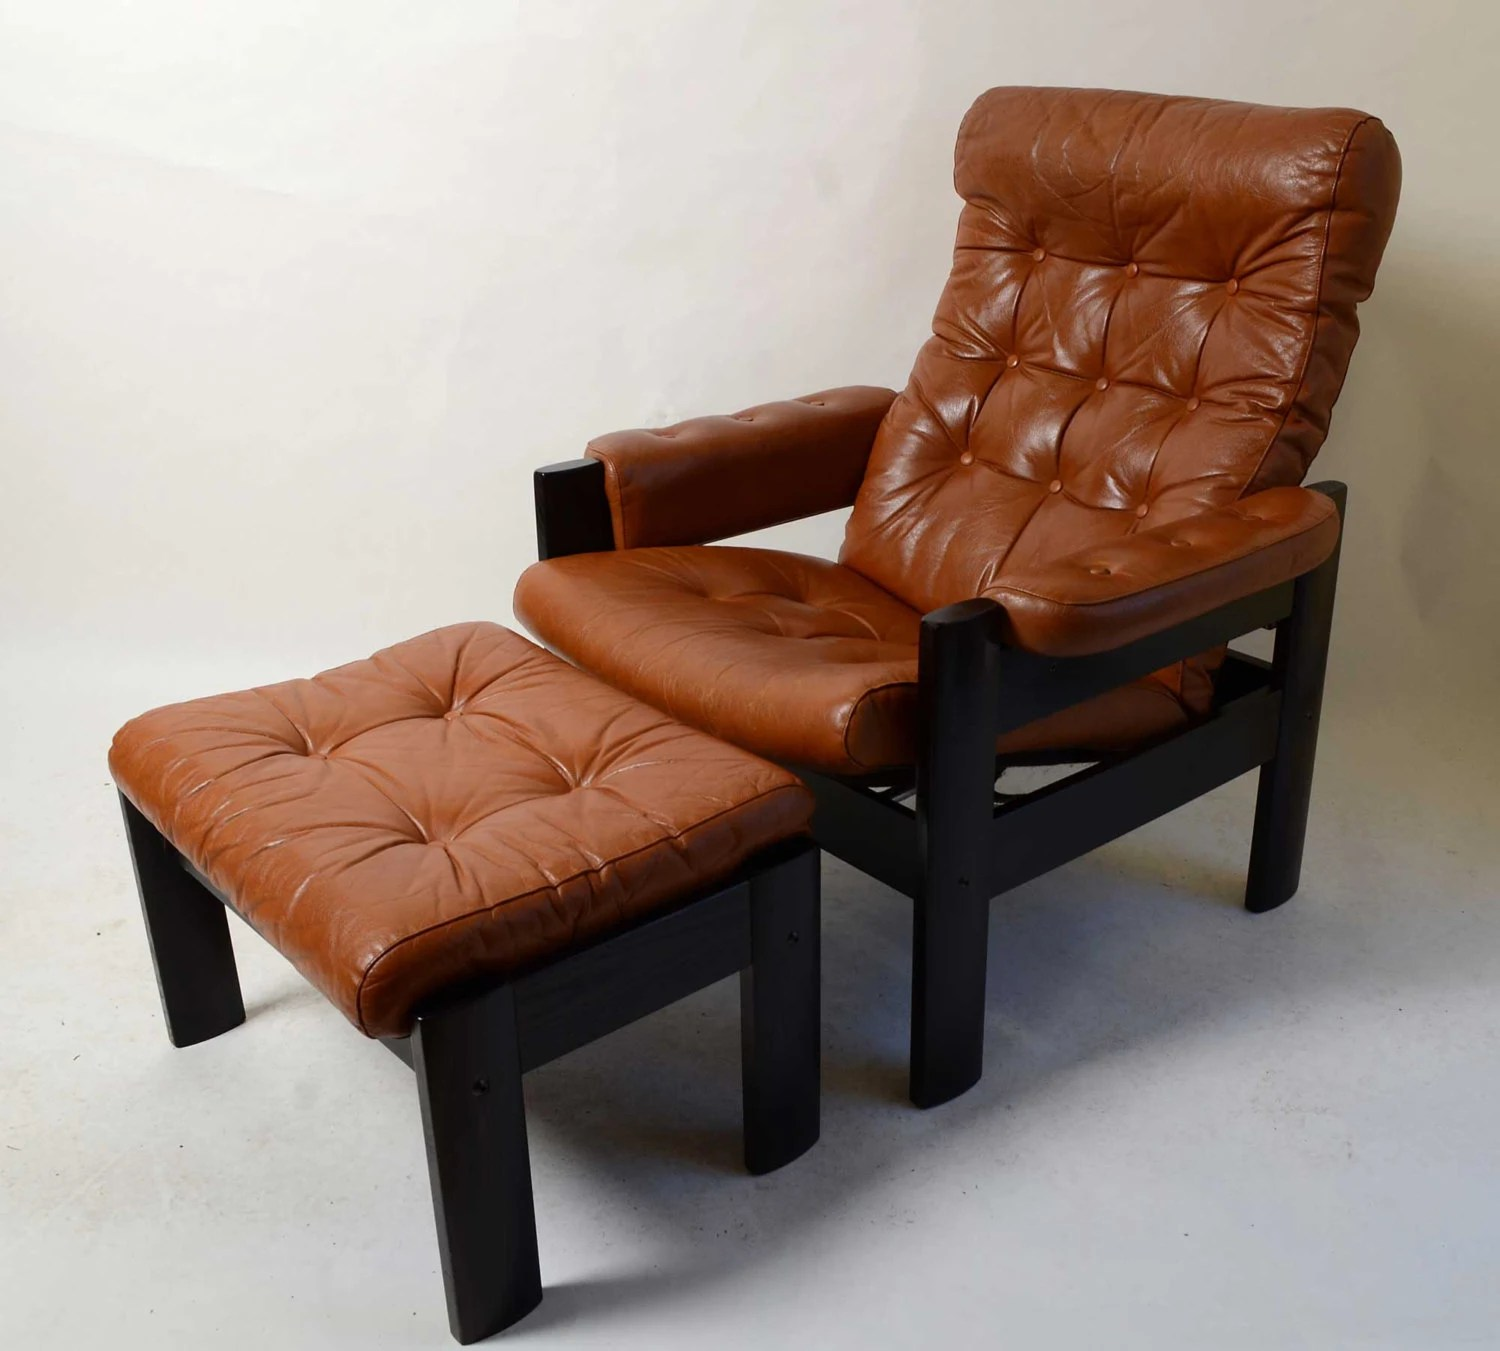 modern black leather recliner chair bedside potty ekornes stressless amigo reclining & ottoman